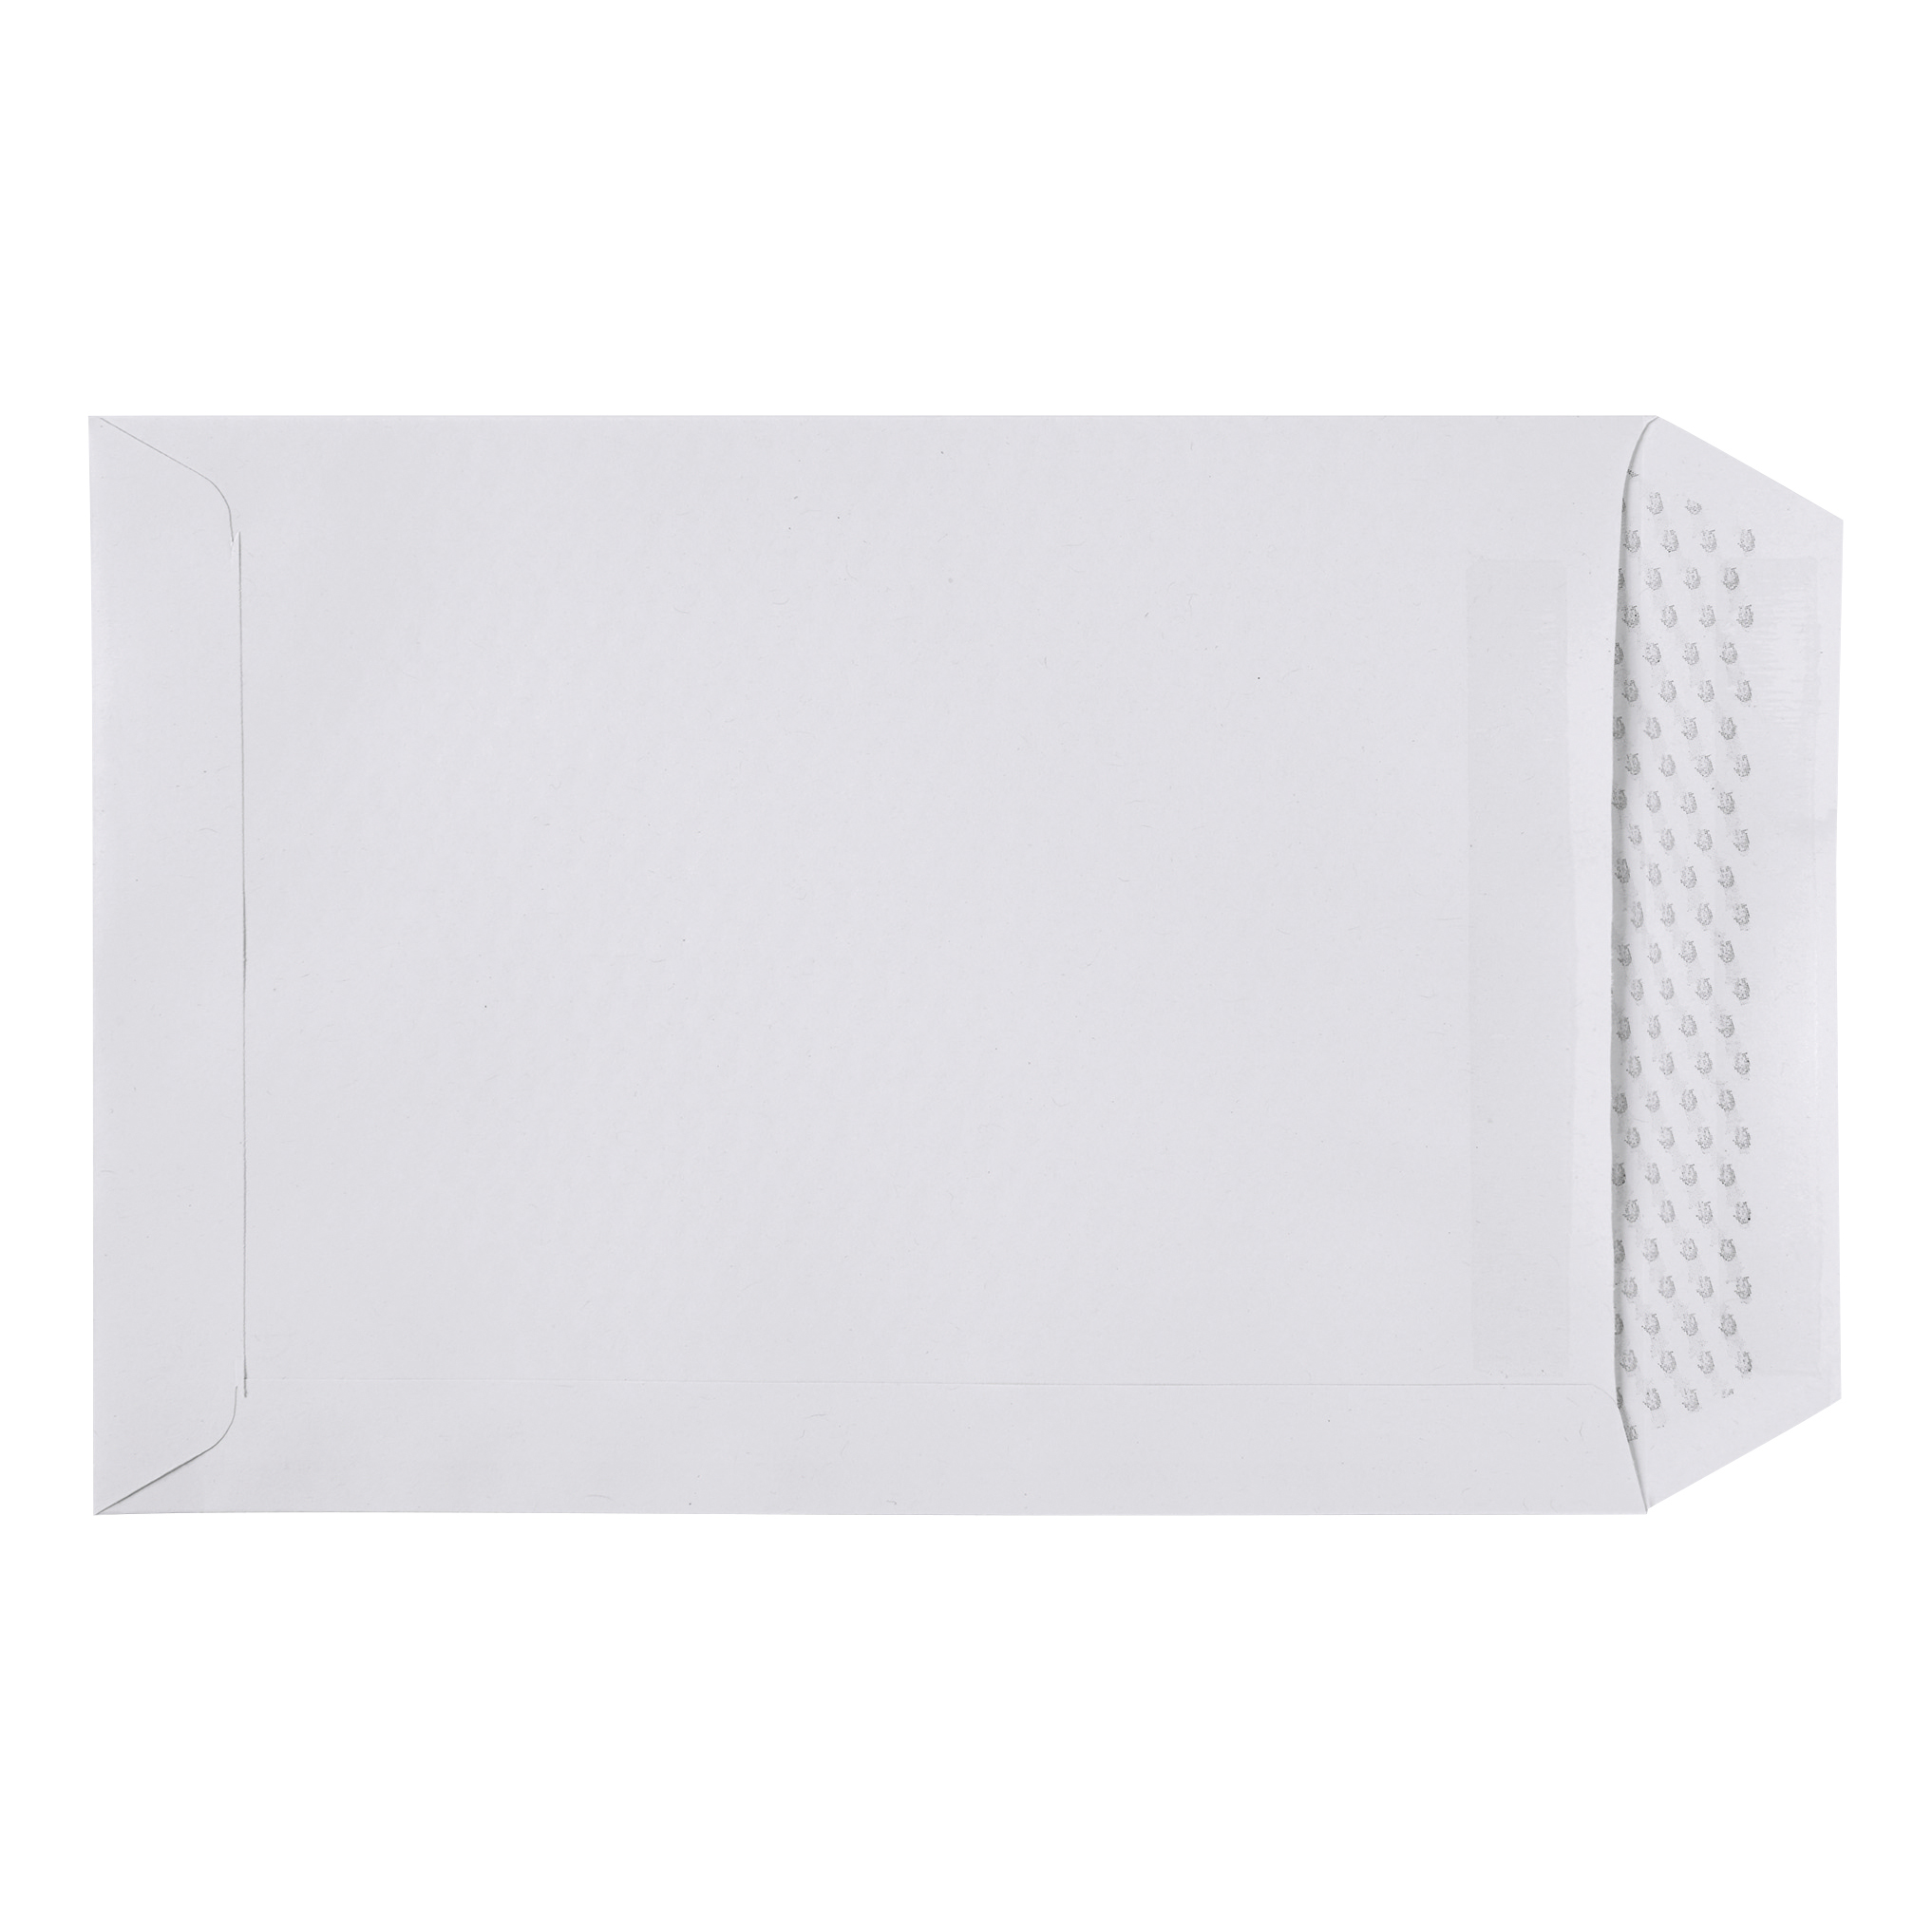 Standard envelopes 5 Star Eco Envelopes Recycled Pocket Self Seal 90gsm C5 229x162mm White Pack 500